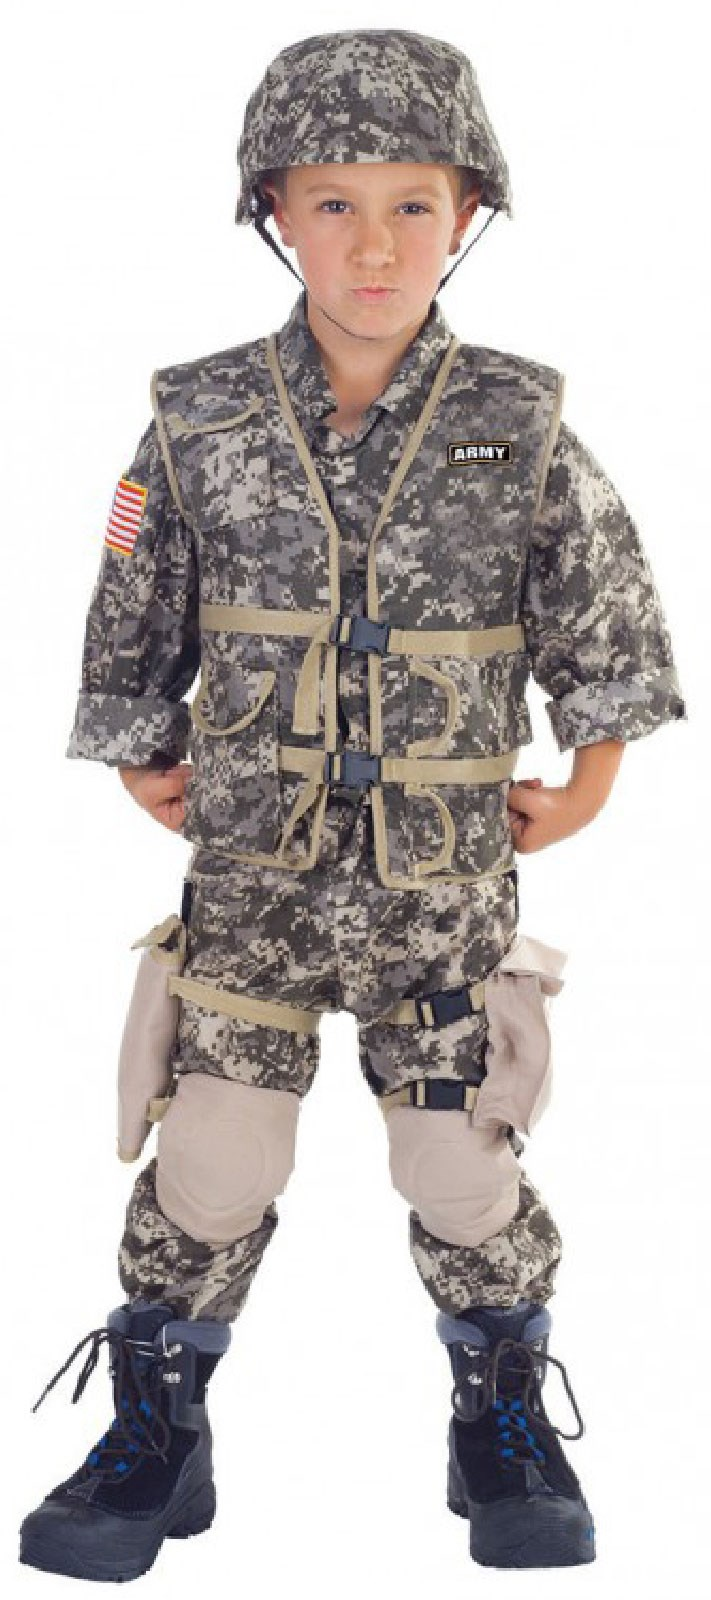 U.S. Army Ranger Deluxe Child Costume